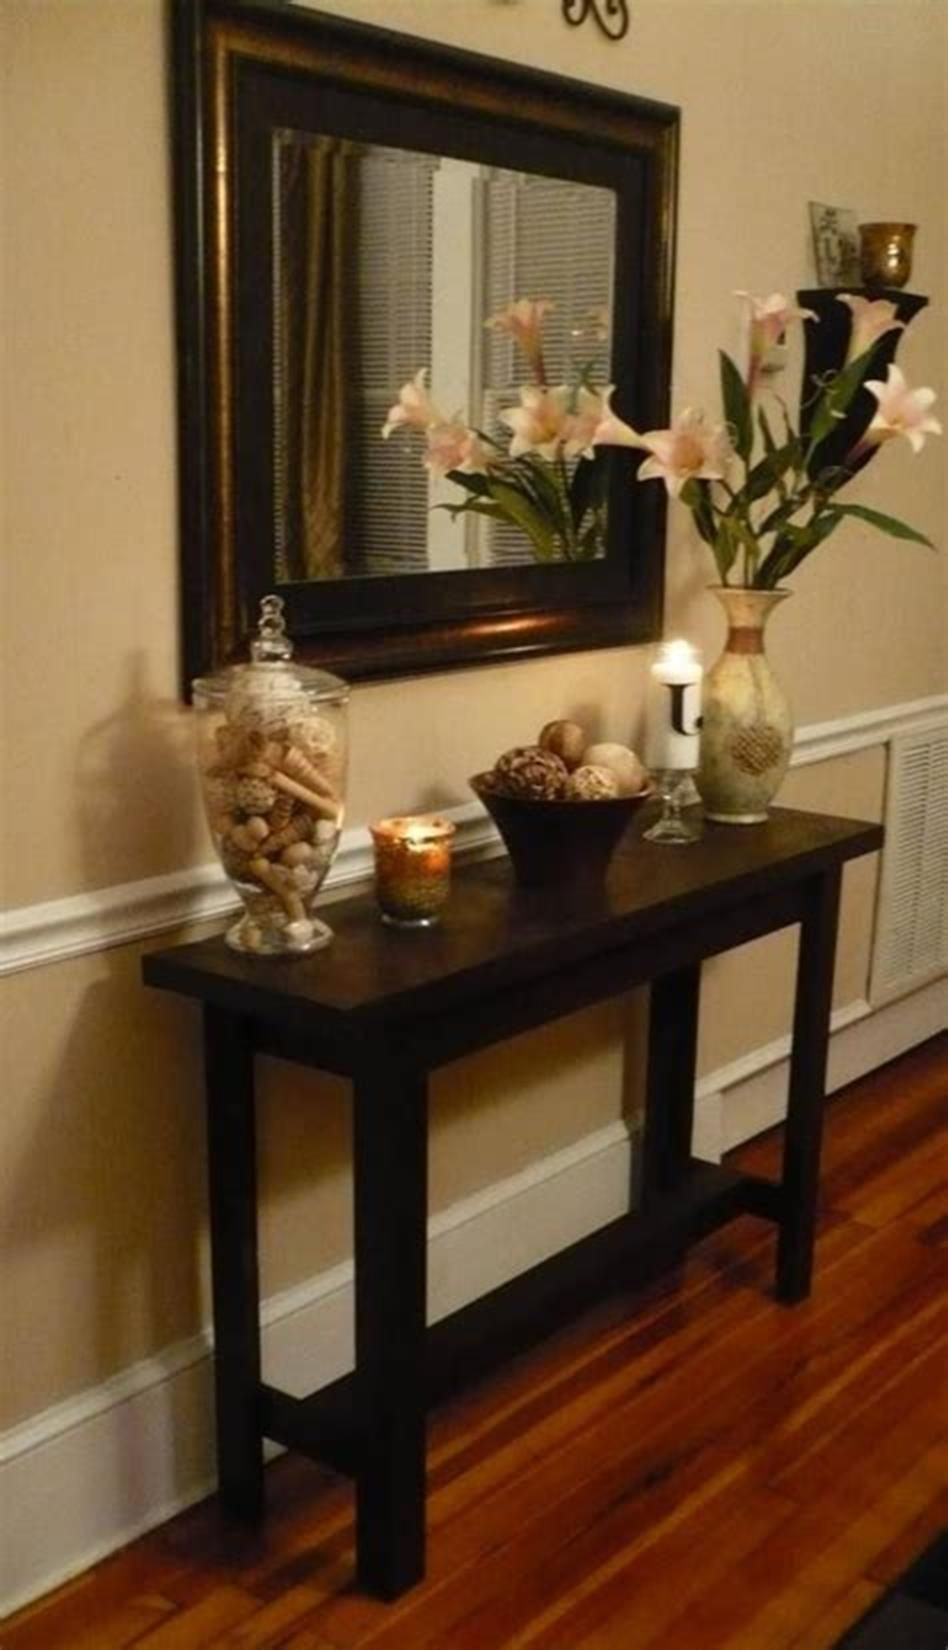 41 Fabulous Hallway Table Decorating Ideas (With images